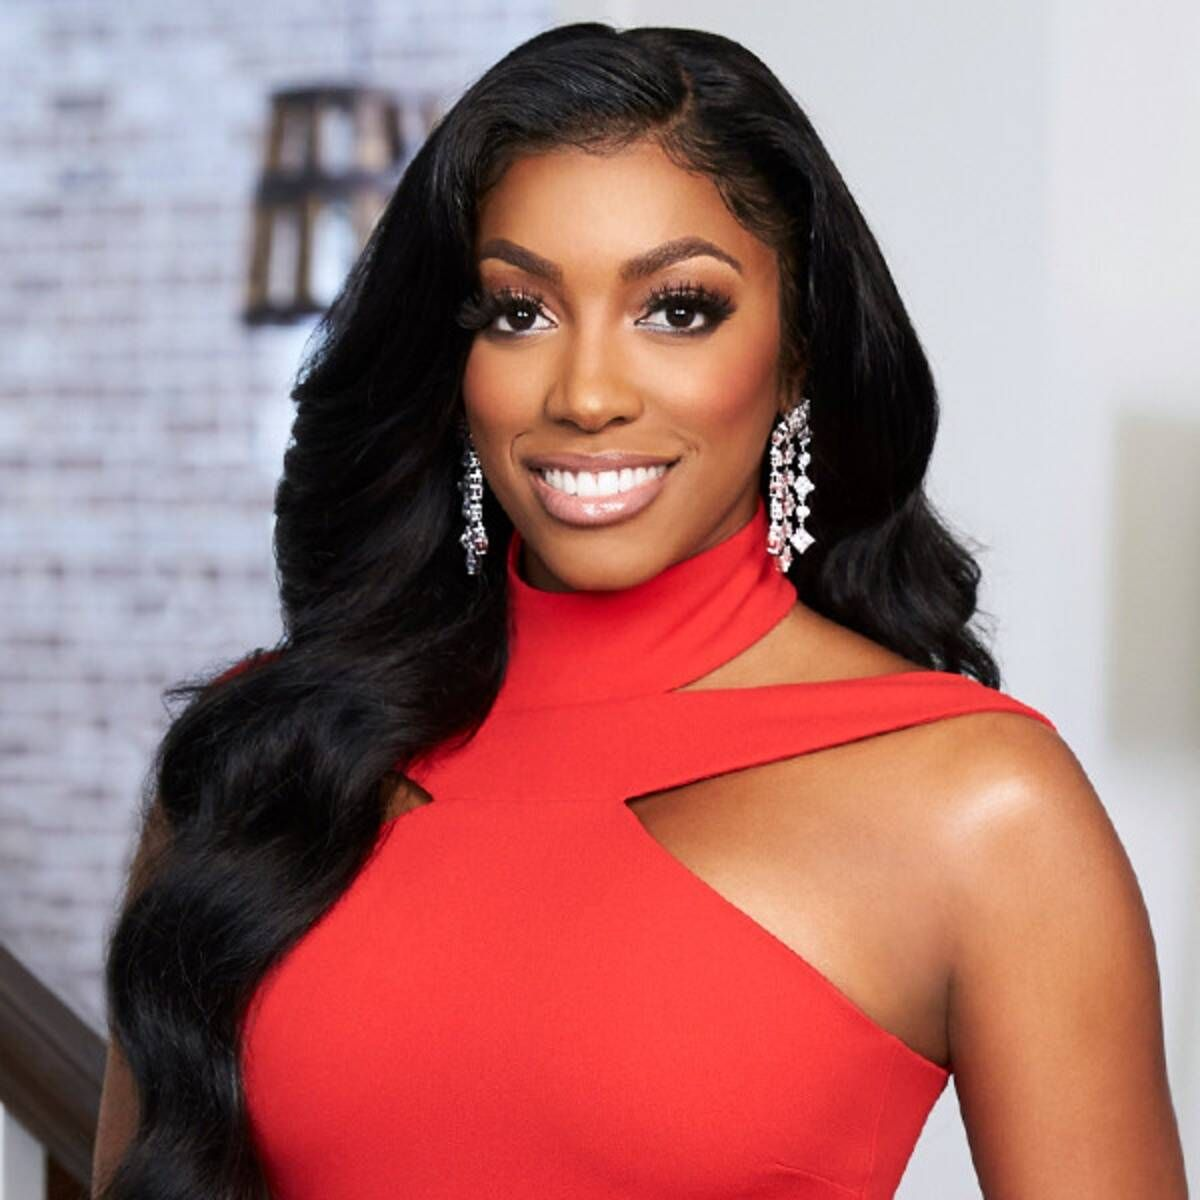 Porsha Williams Tells Fans That They're Not Stuck At Home, But 'Safe At Home' #PorshaWilliams celebrityinsider.org #Lifestyle #celebrityinsider #celebritynews #celebrities #celebrity #rumors #gossip